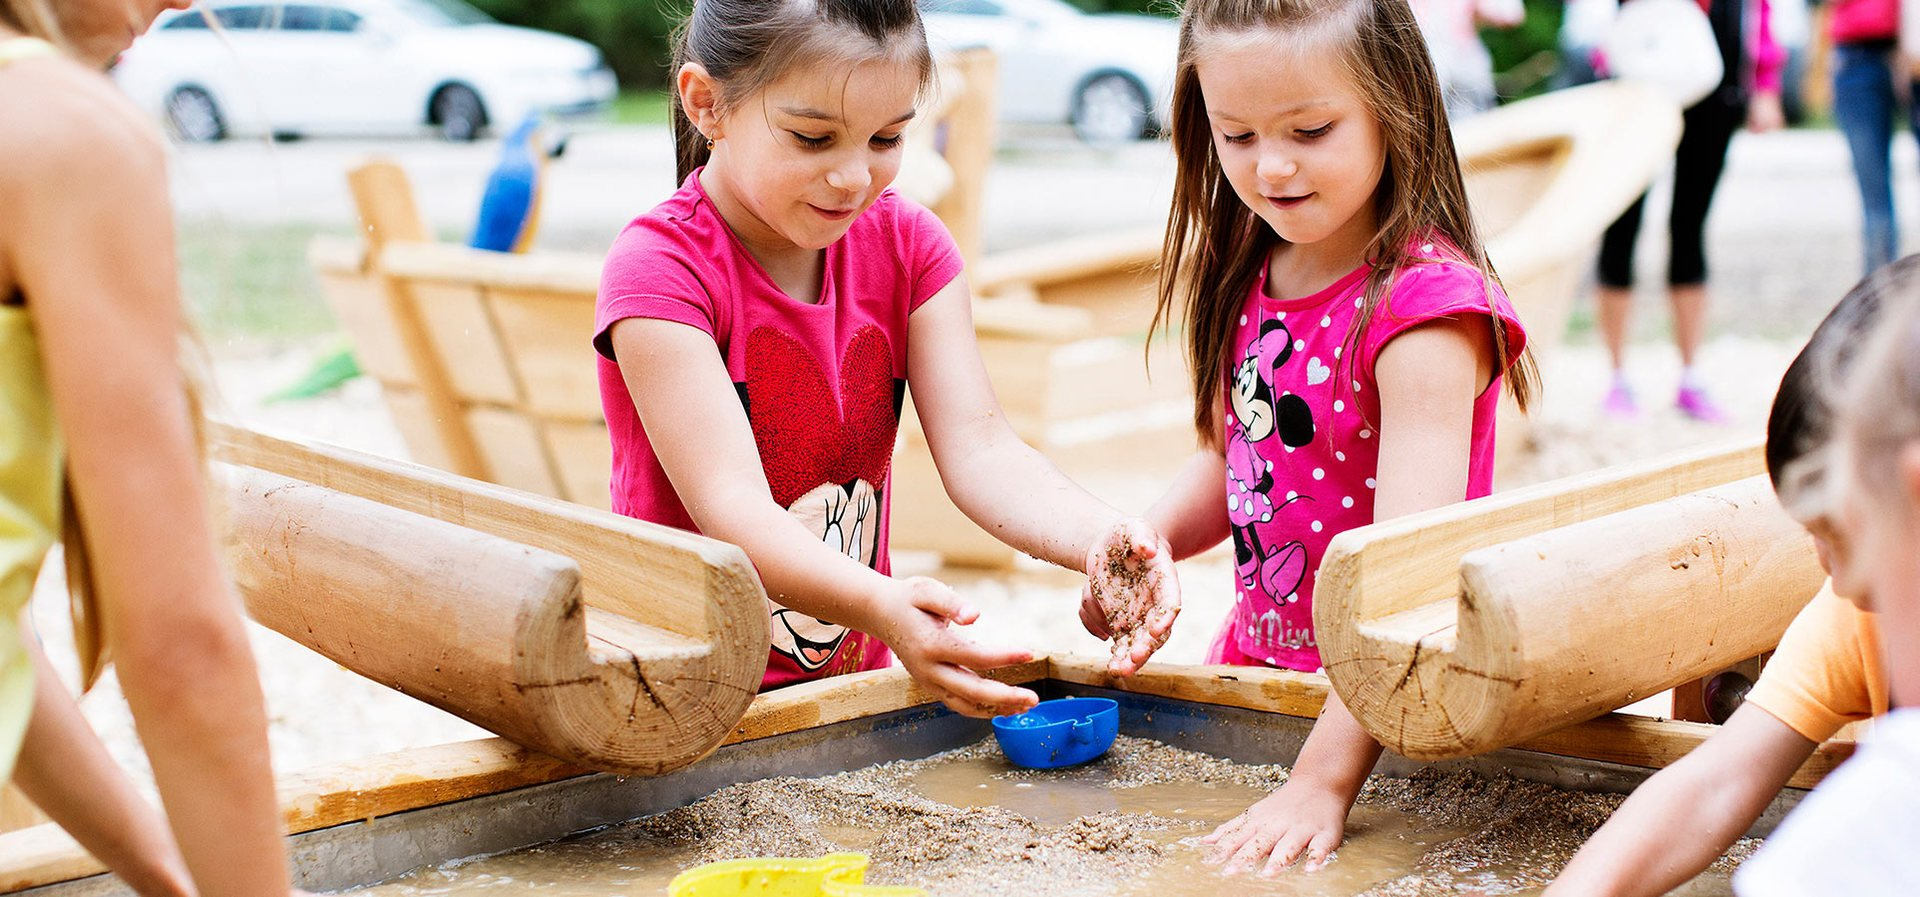 A vital part of a child's creative and cognitive development